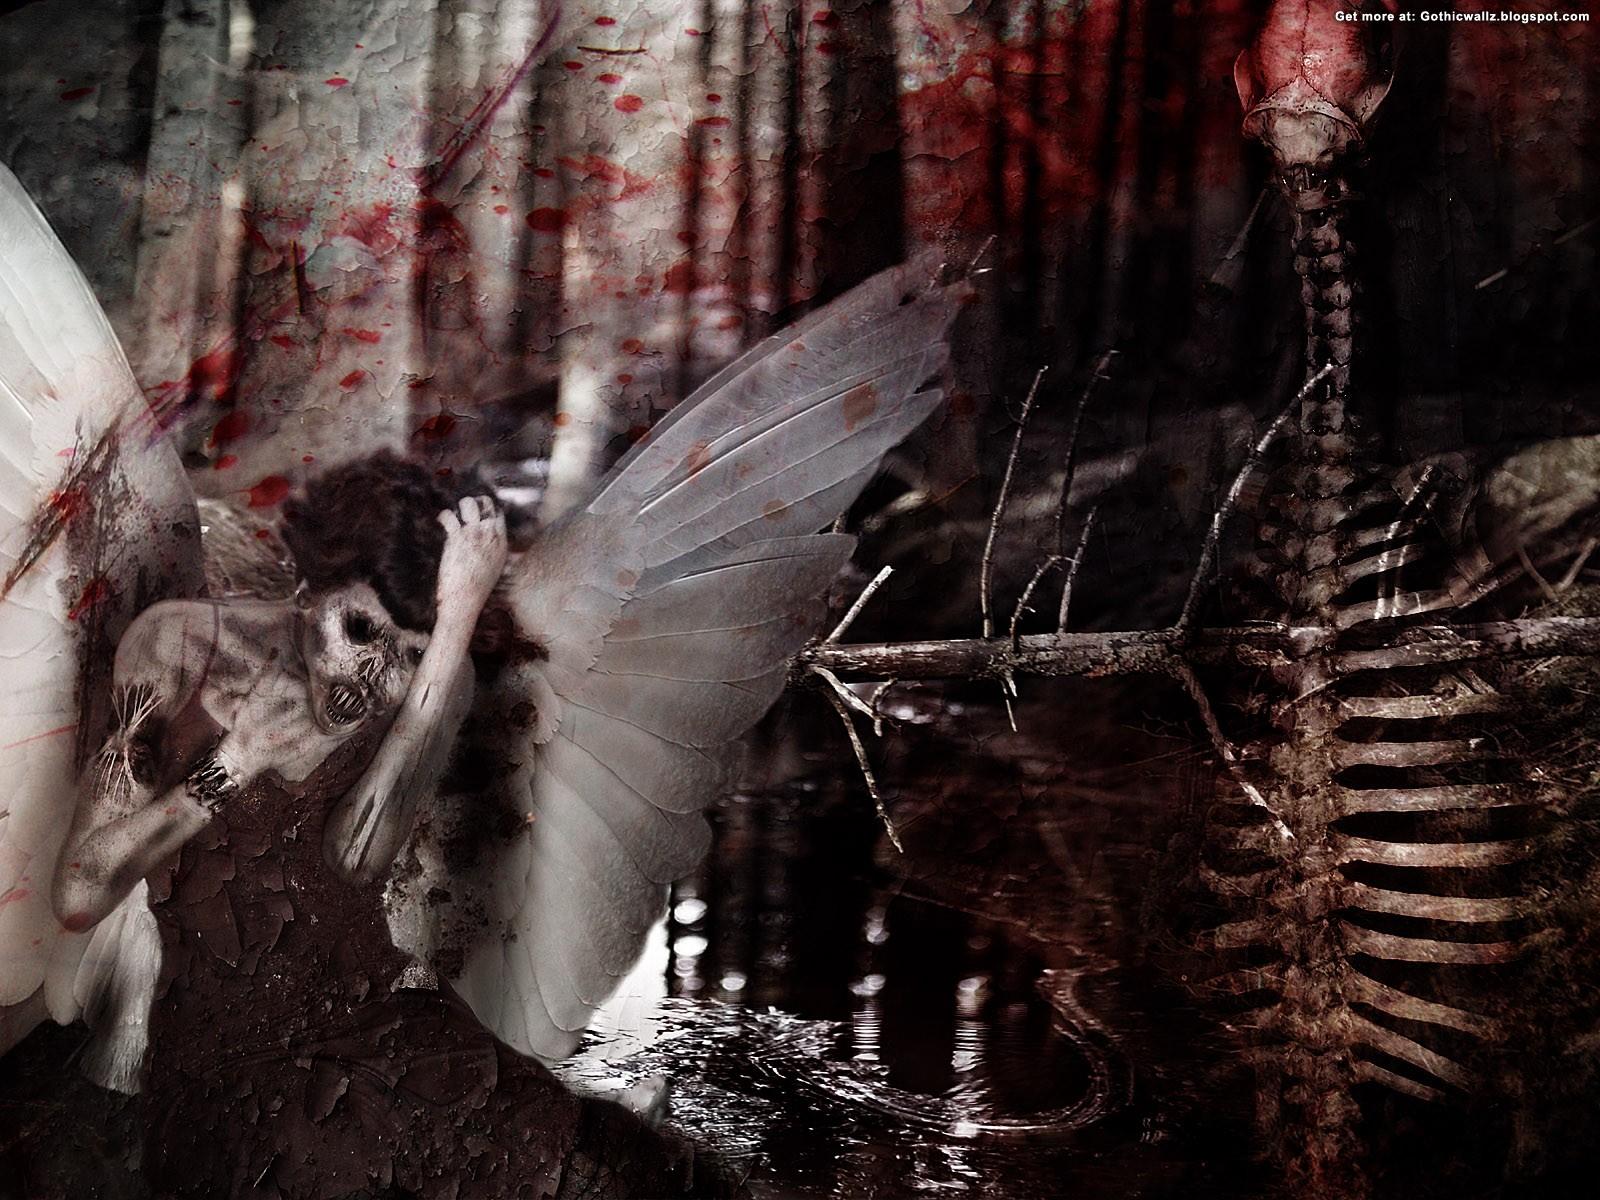 Forsaken Angel | Gothic Wallpaper Download